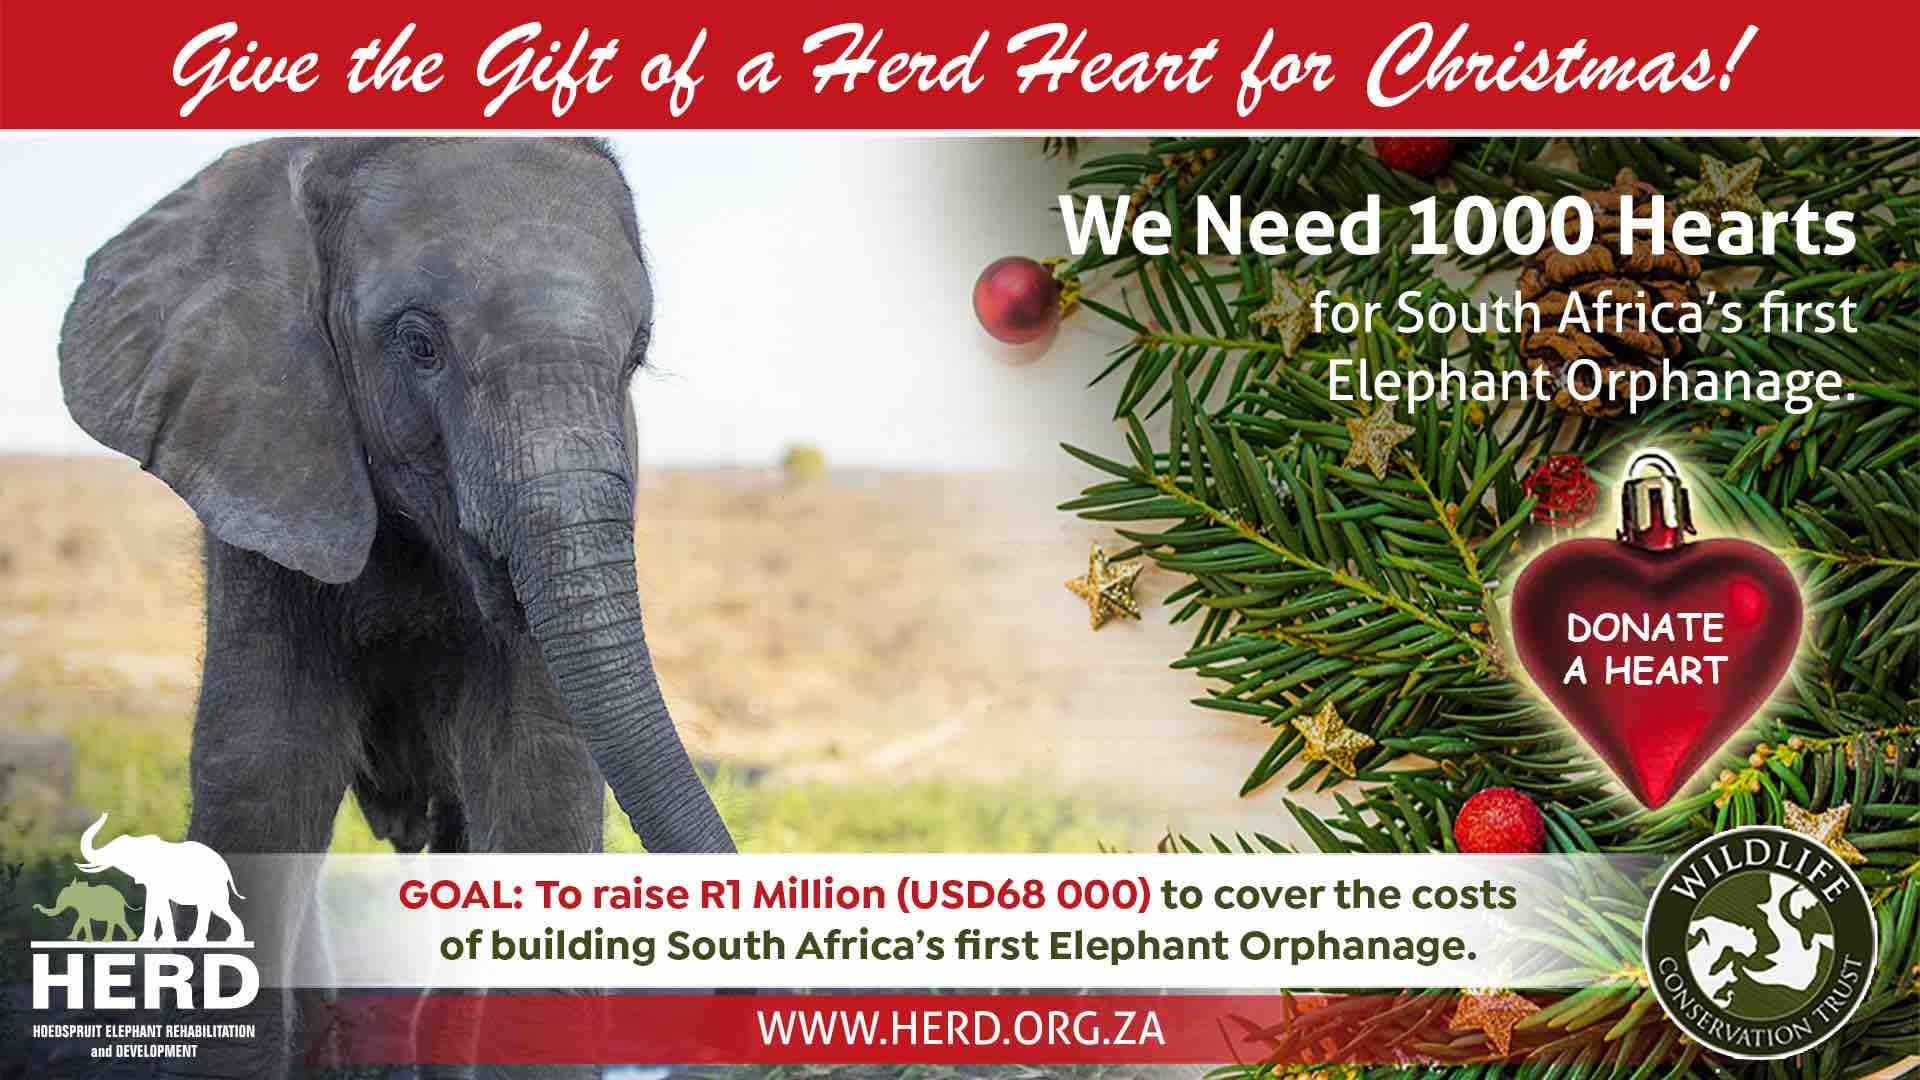 1000 Hearts for Christmas elephant orphanage